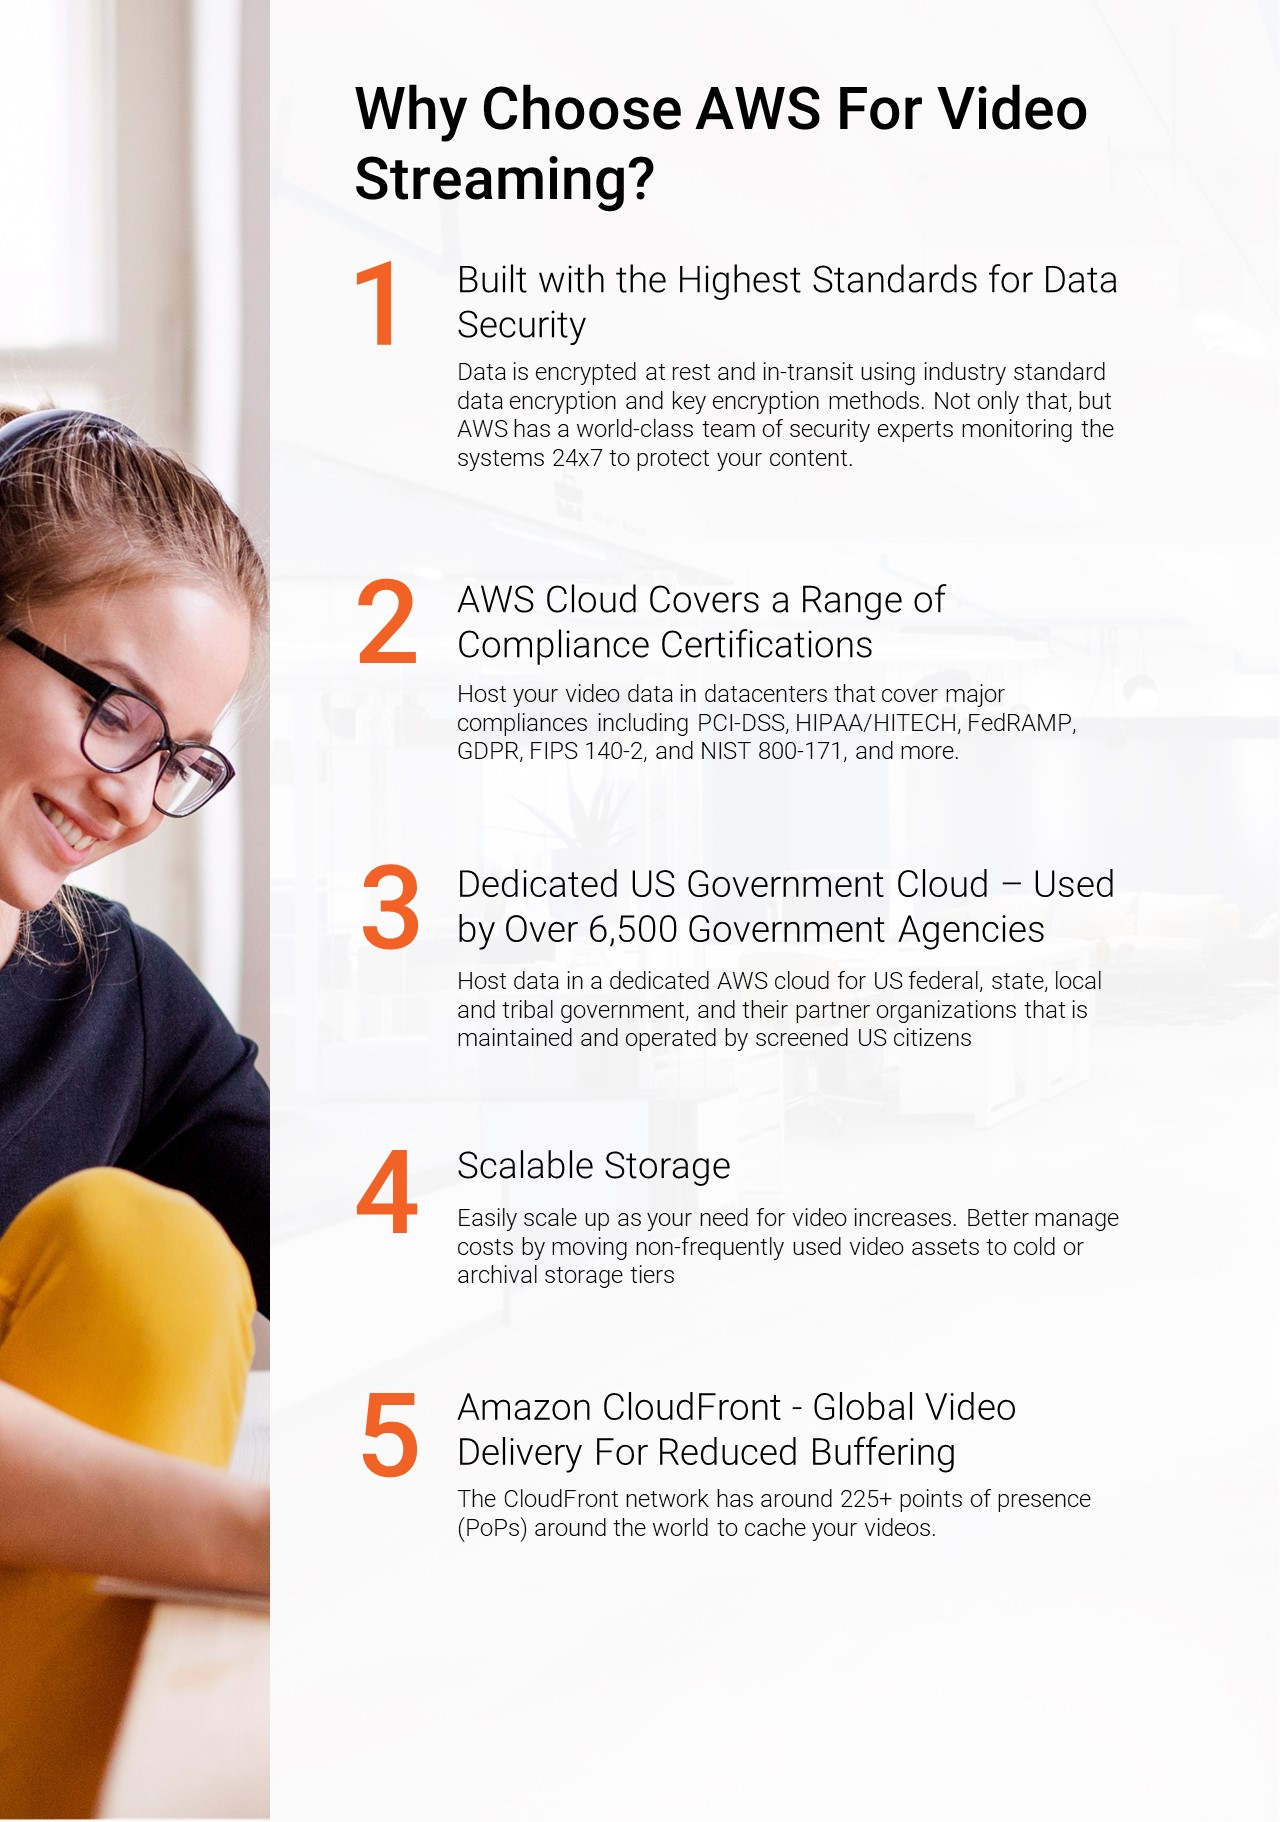 AWS Video Streaming Infographic